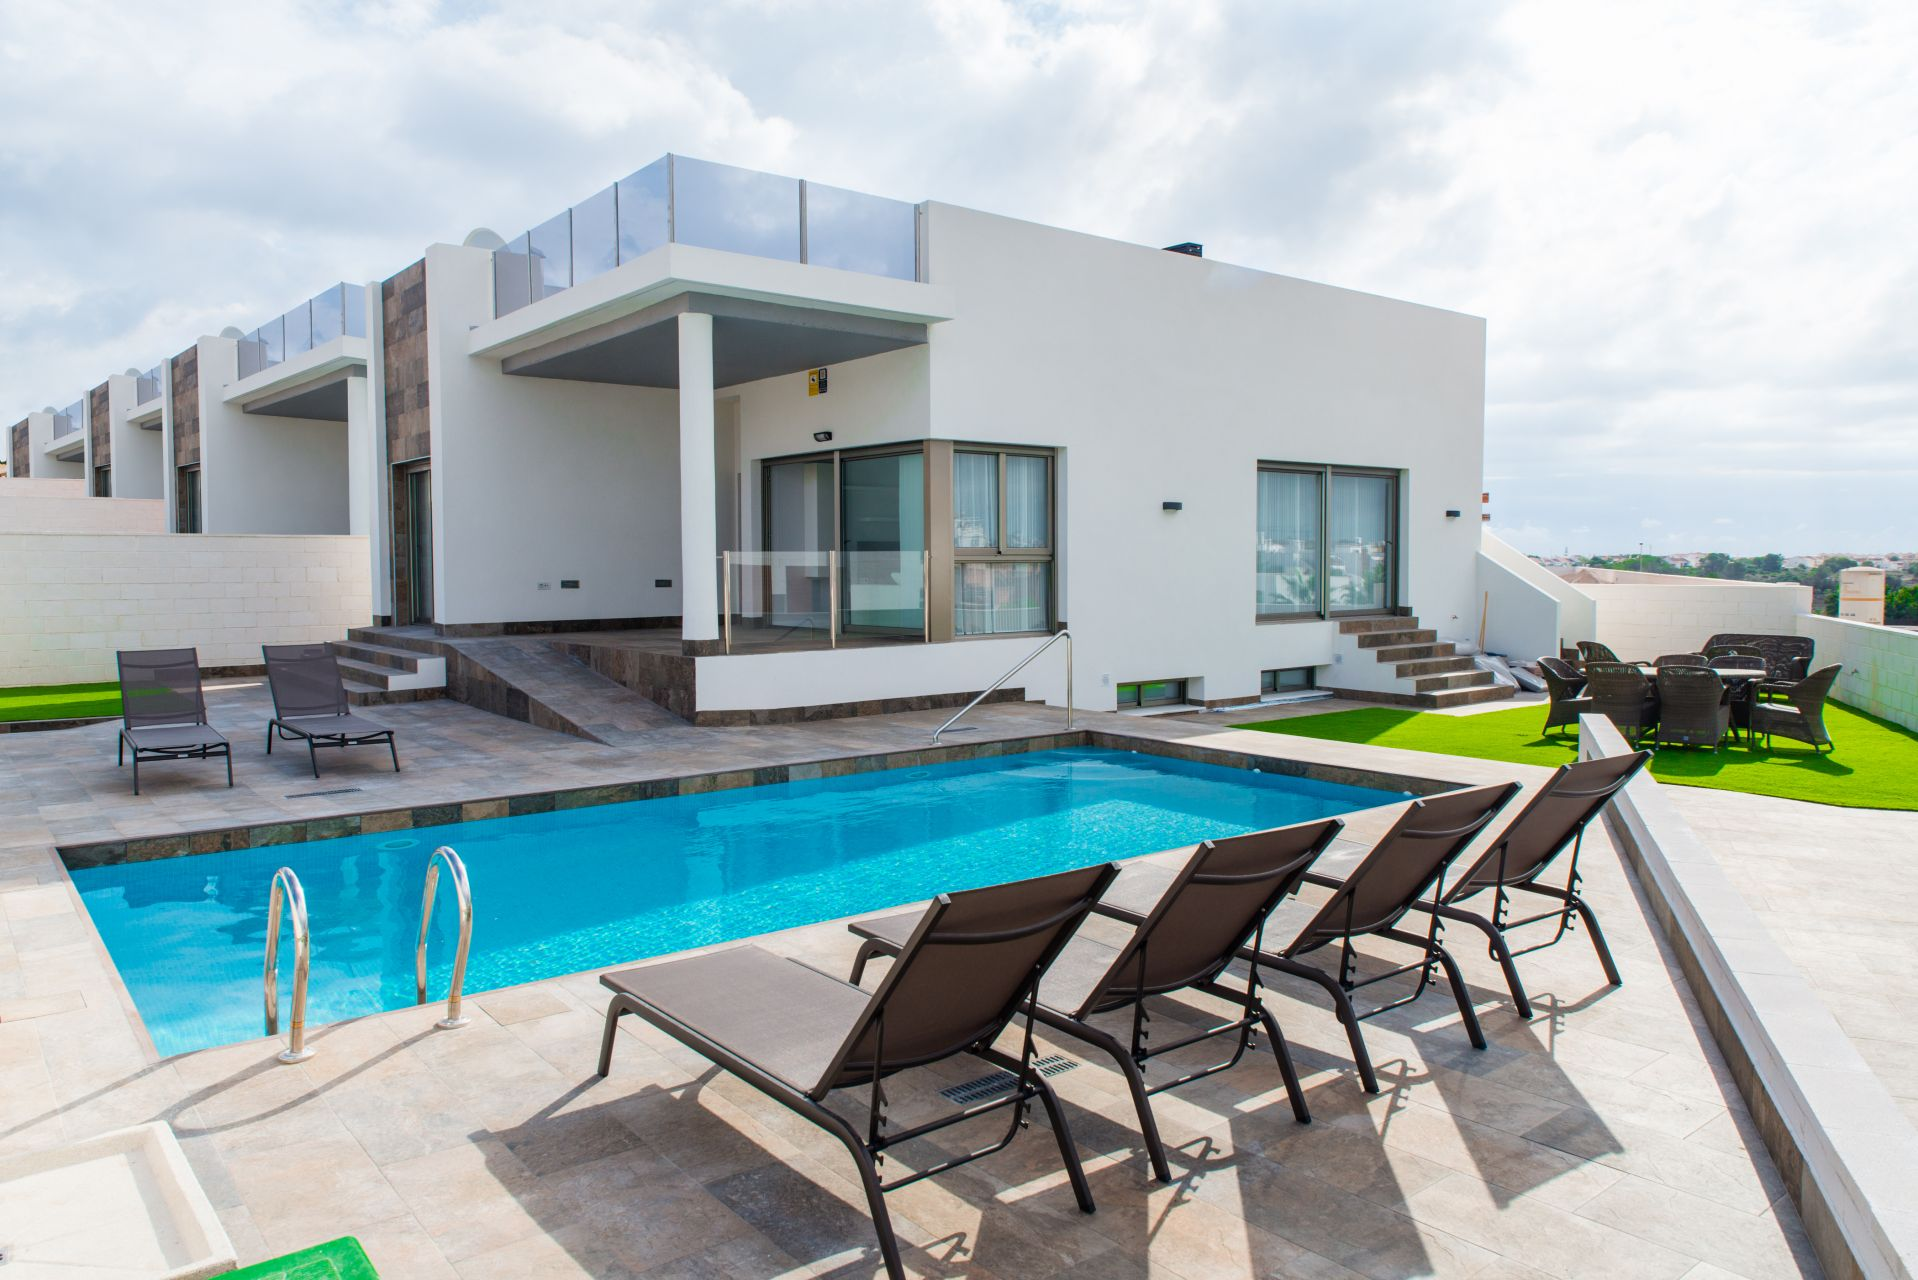 Villa with 3 bedrooms and 3 bathrooms, on a separate plot with pool and solarium. 1